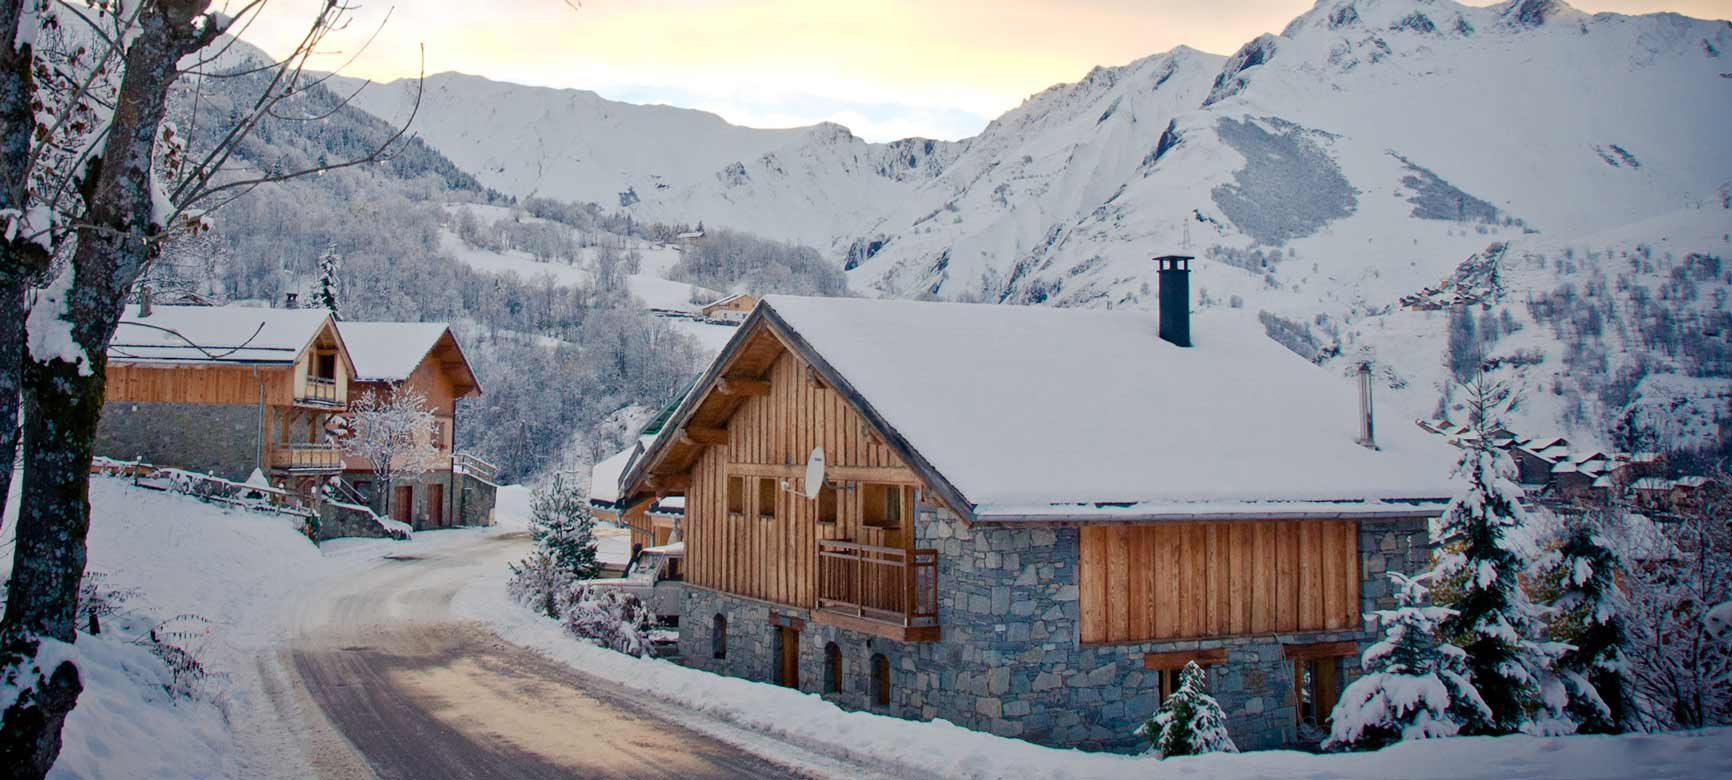 Chalet Alpage - Our Rustic and Charming Catered Chalet